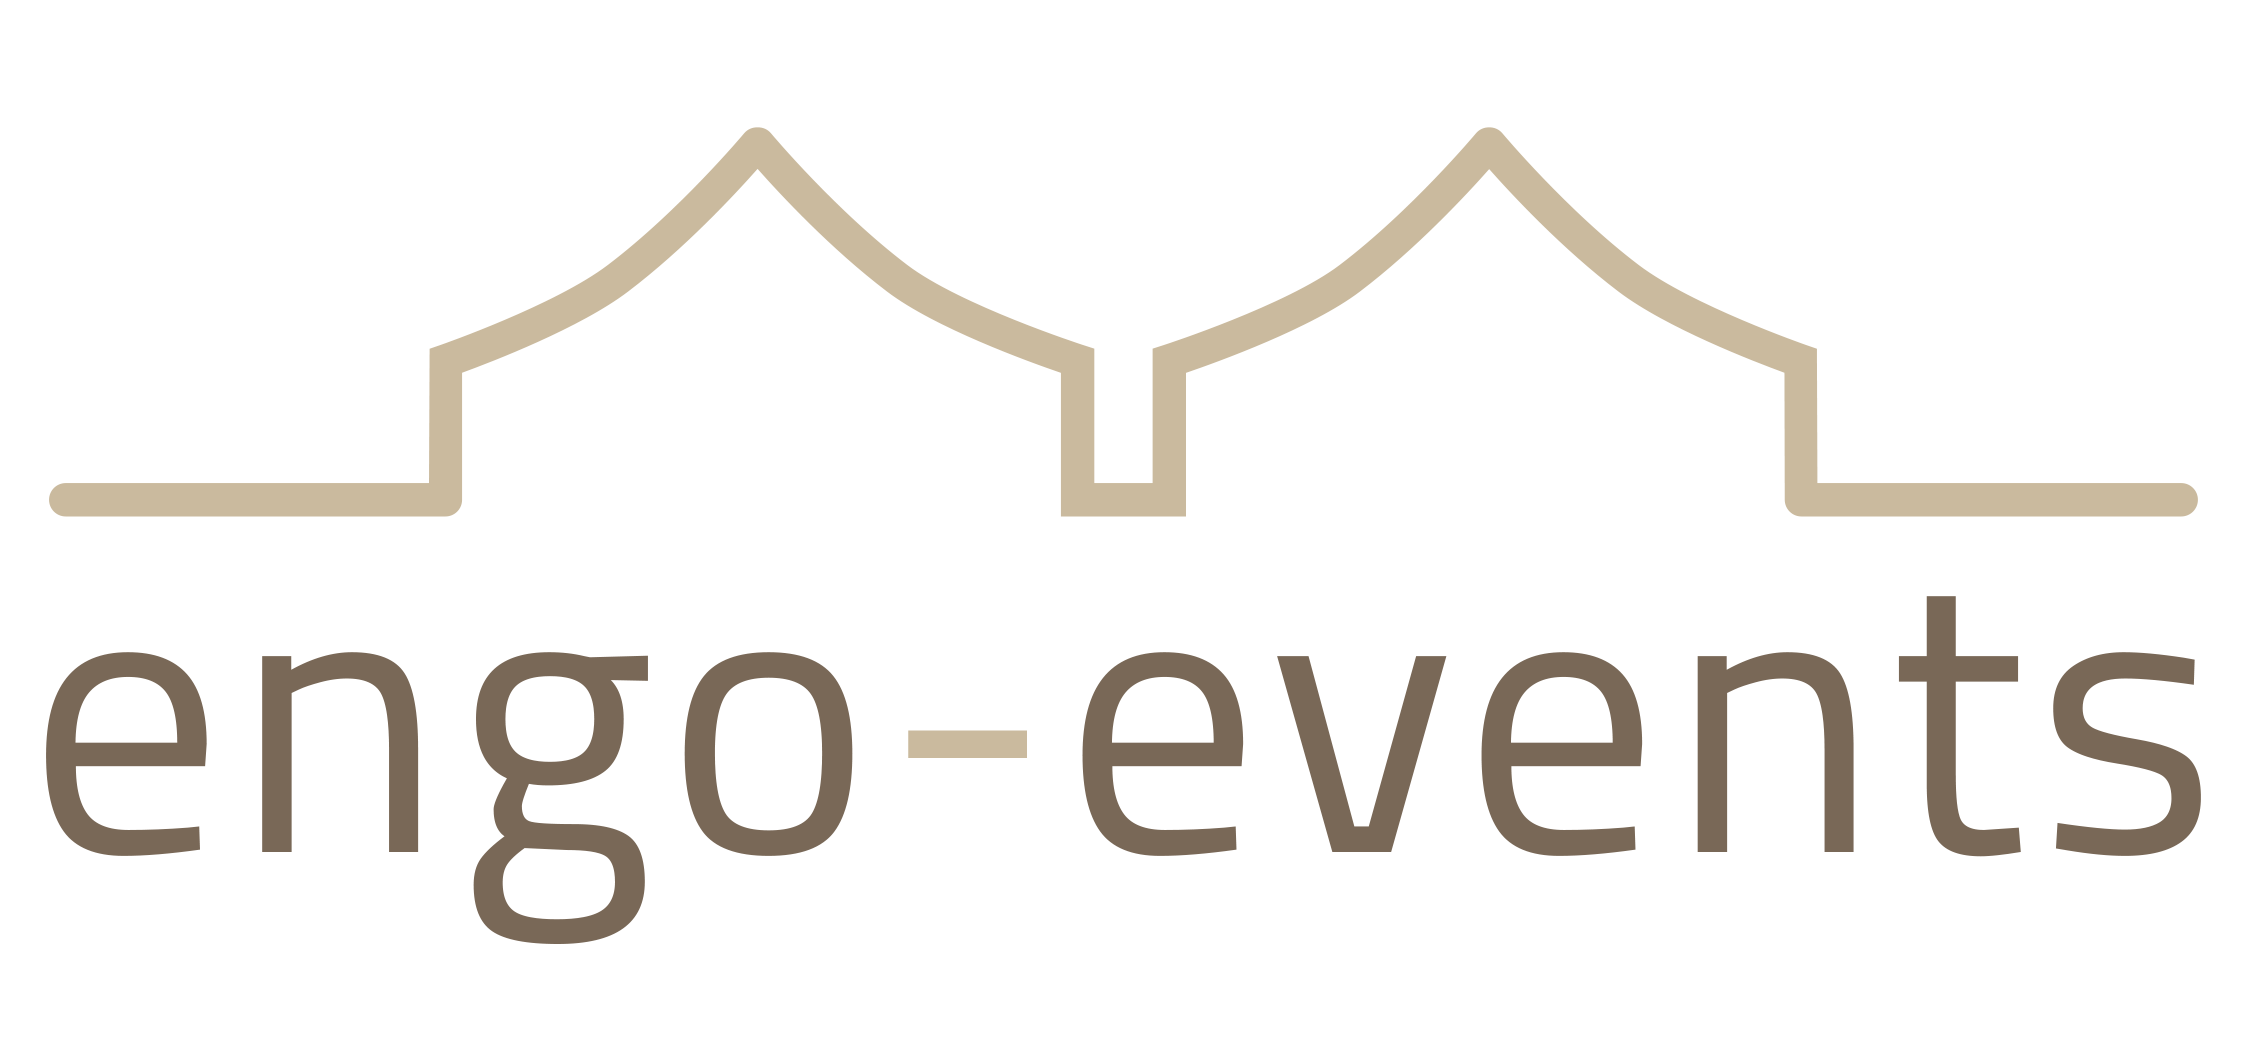 EnGo-Events